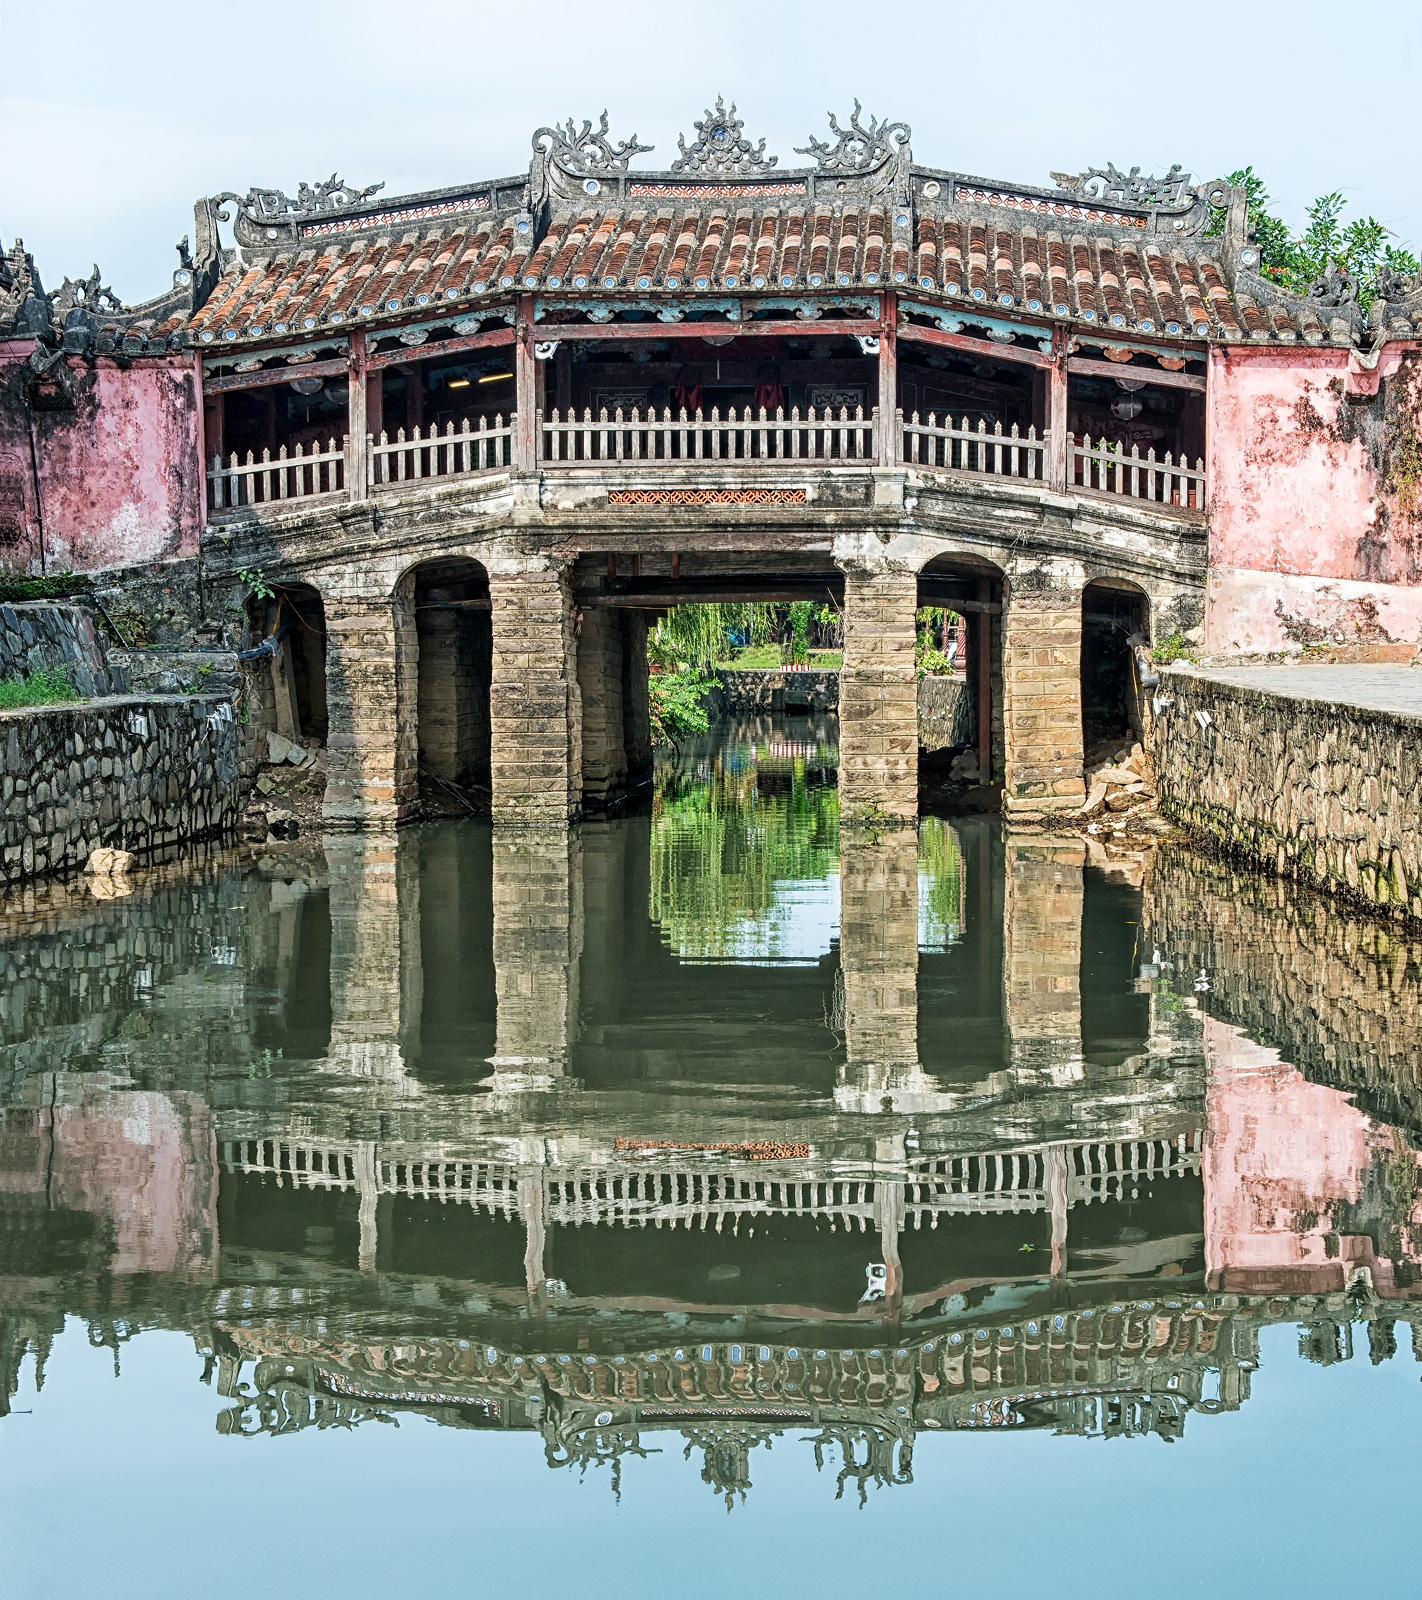 Japanese Covered Bridge, Hoi An by Philip Haber